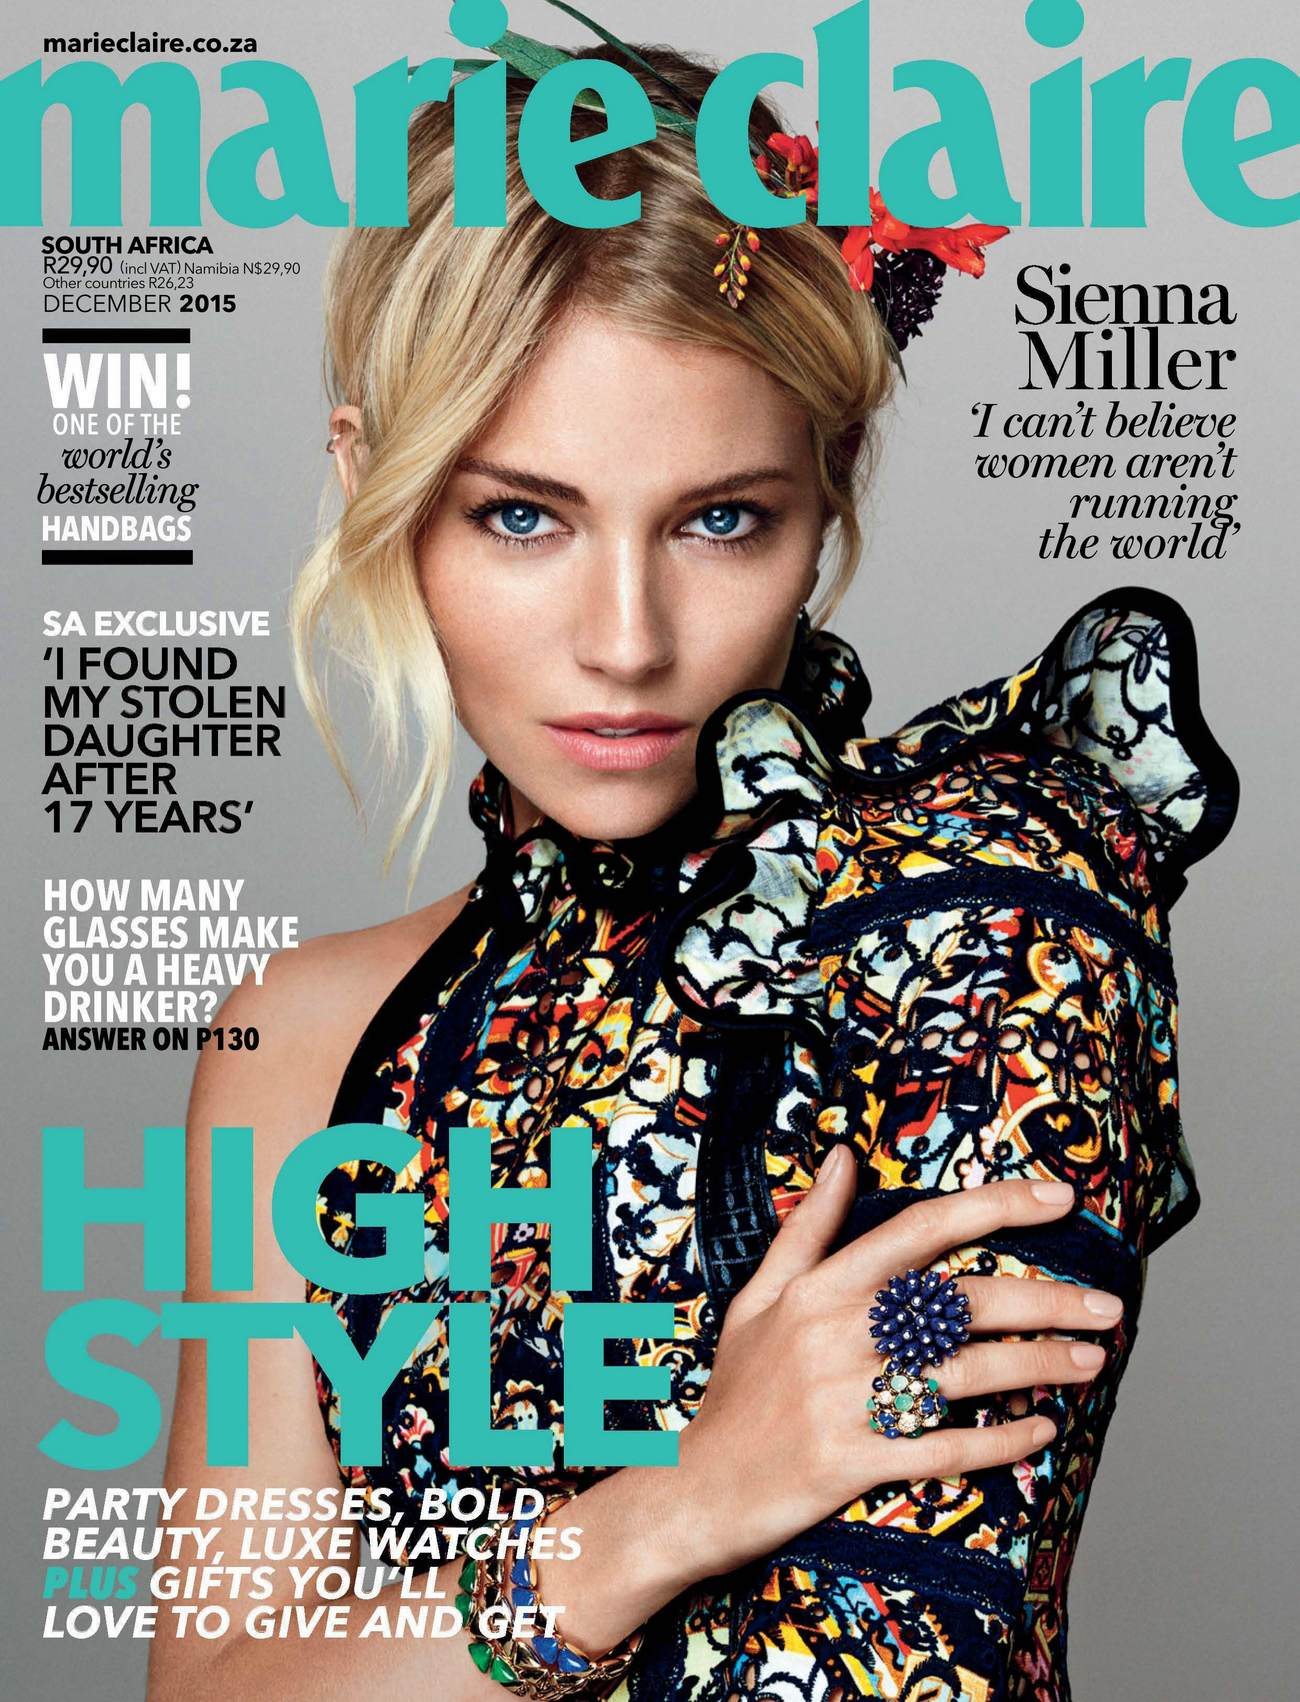 Sienna Miller for Marie Claire Magazine South Africa Issue-1